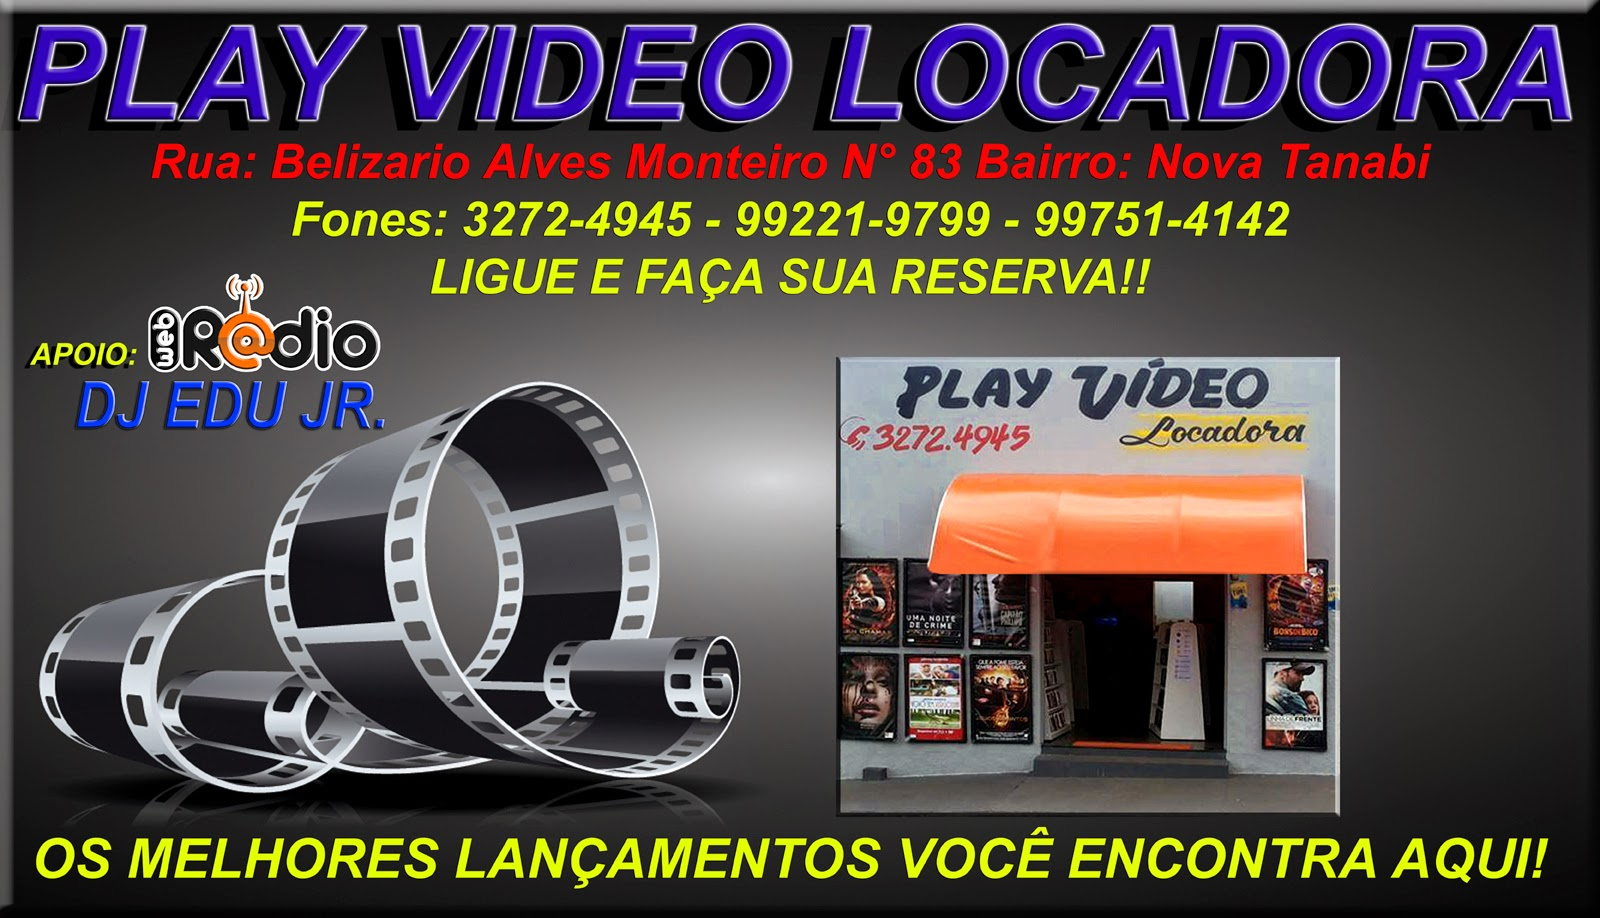 Patrocinador Play Video Locadora!